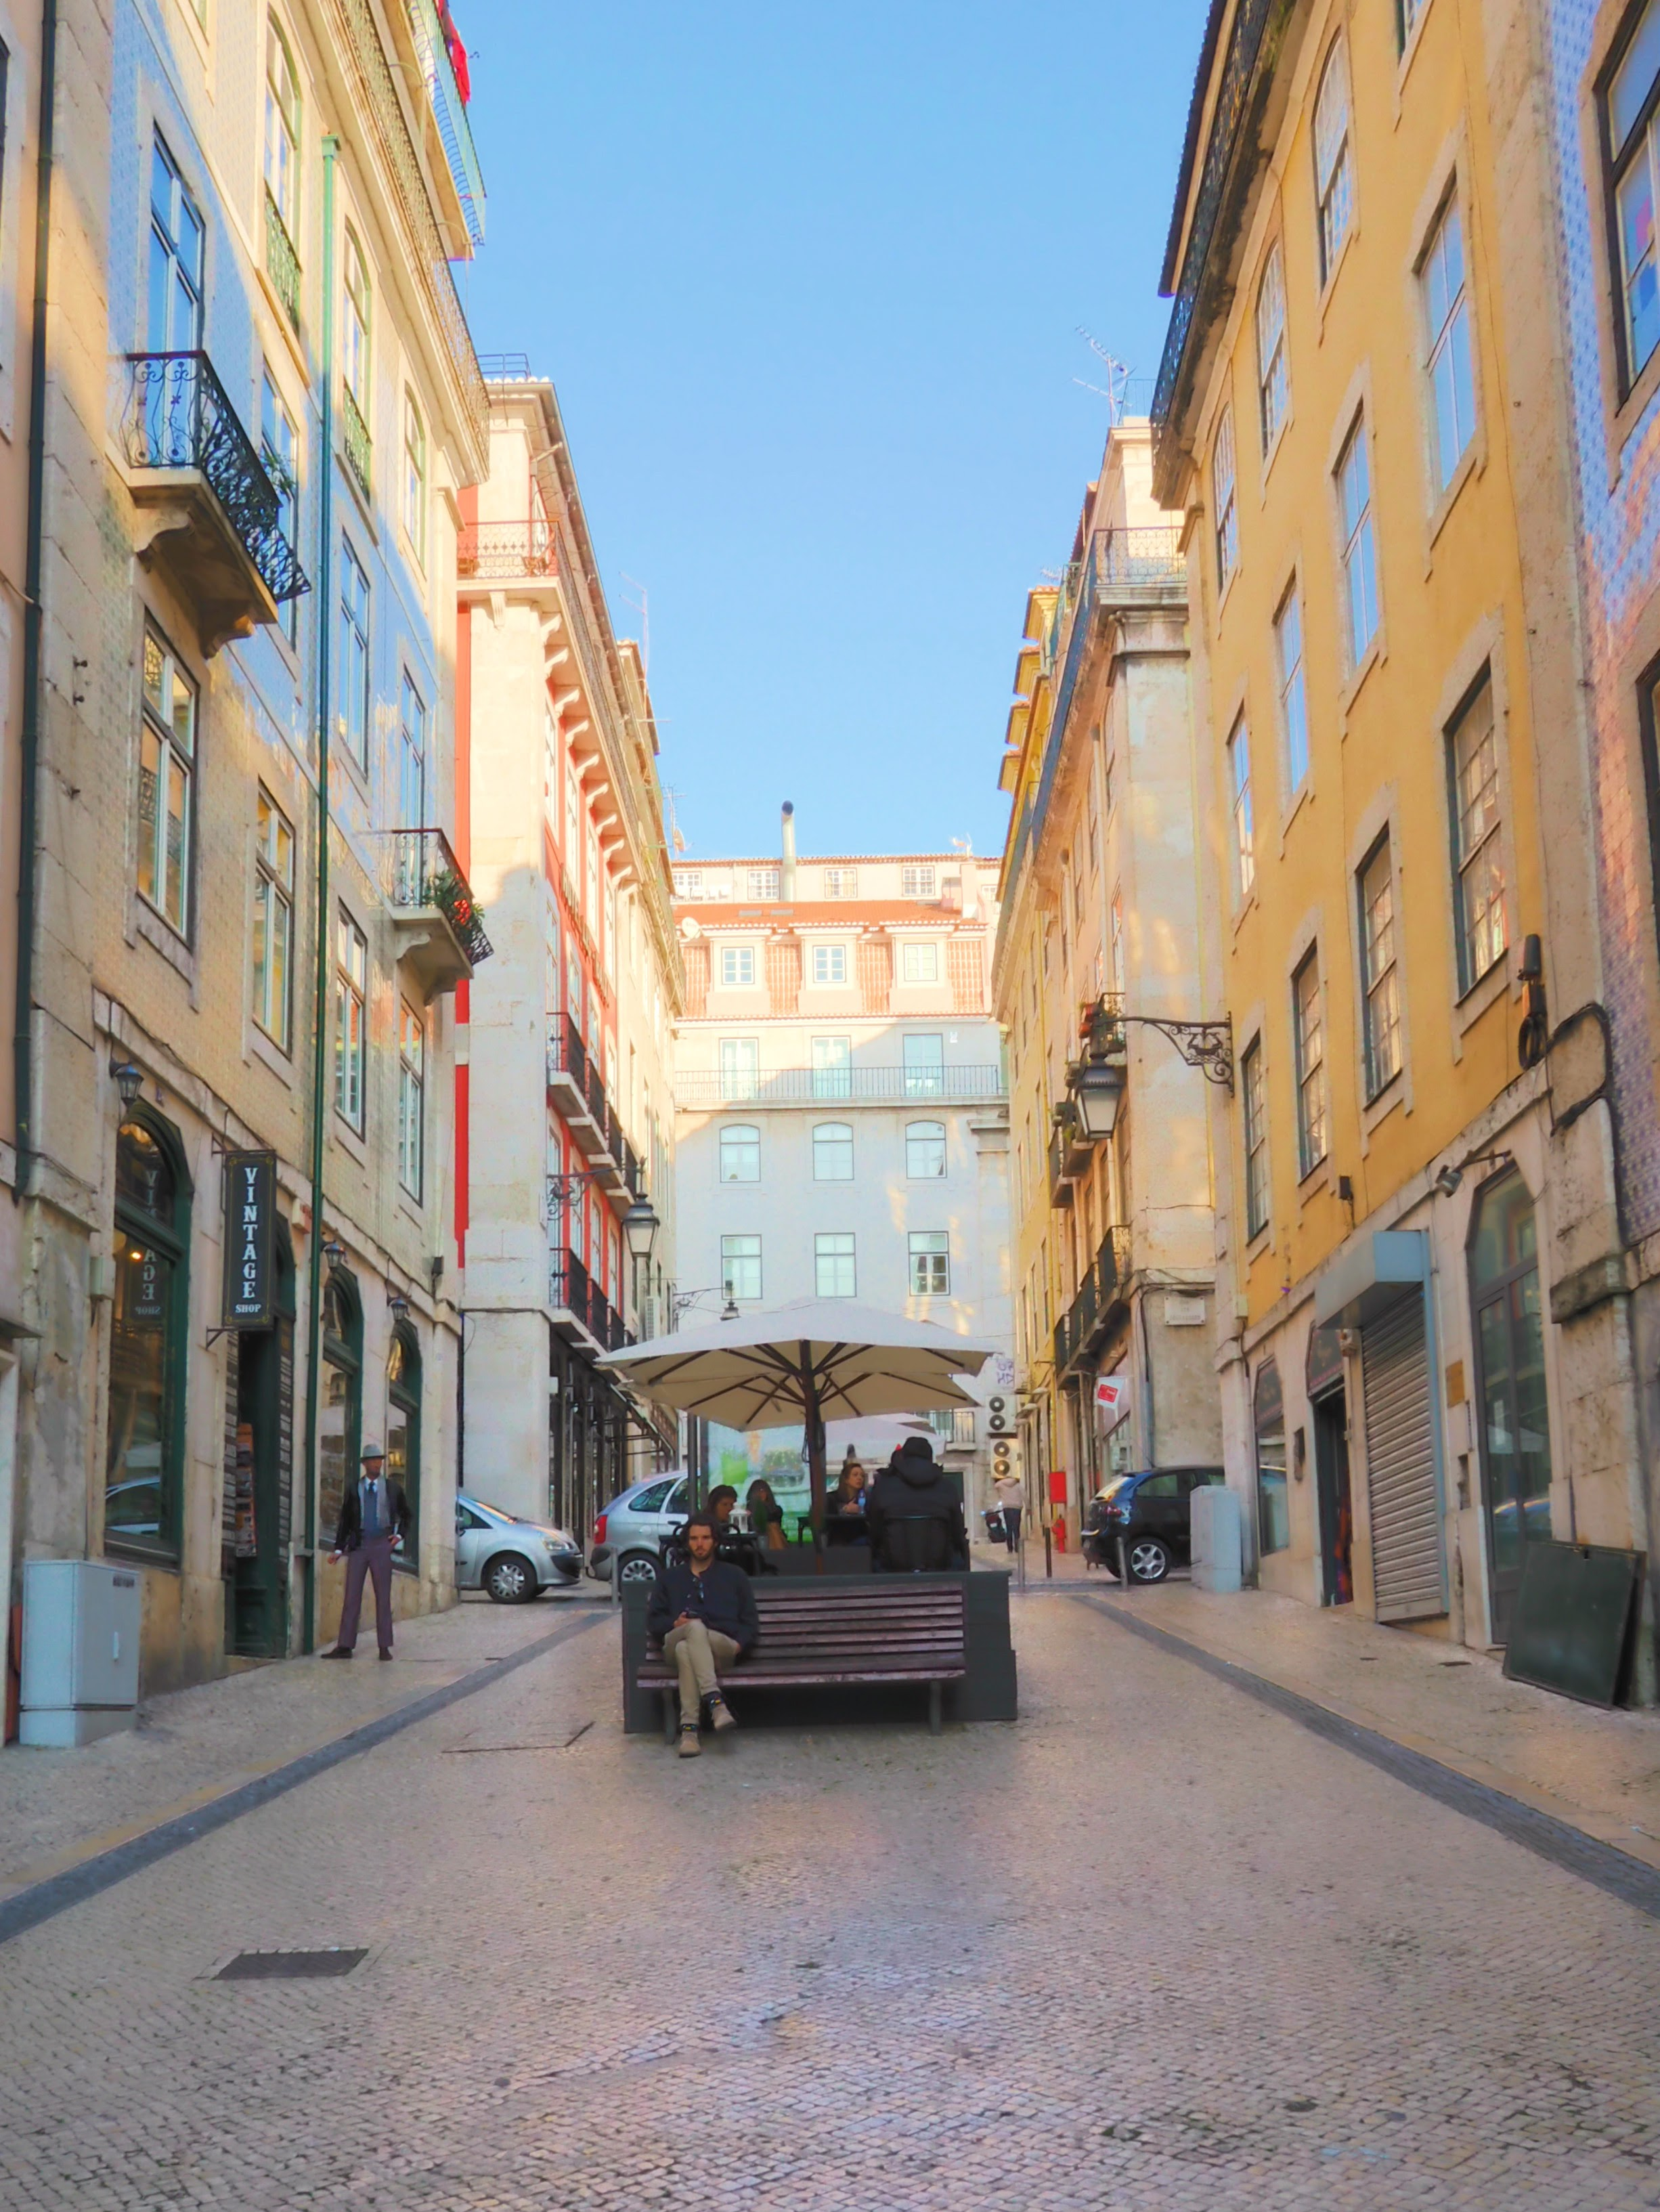 The streets of Lisbon, waiting to be discovered